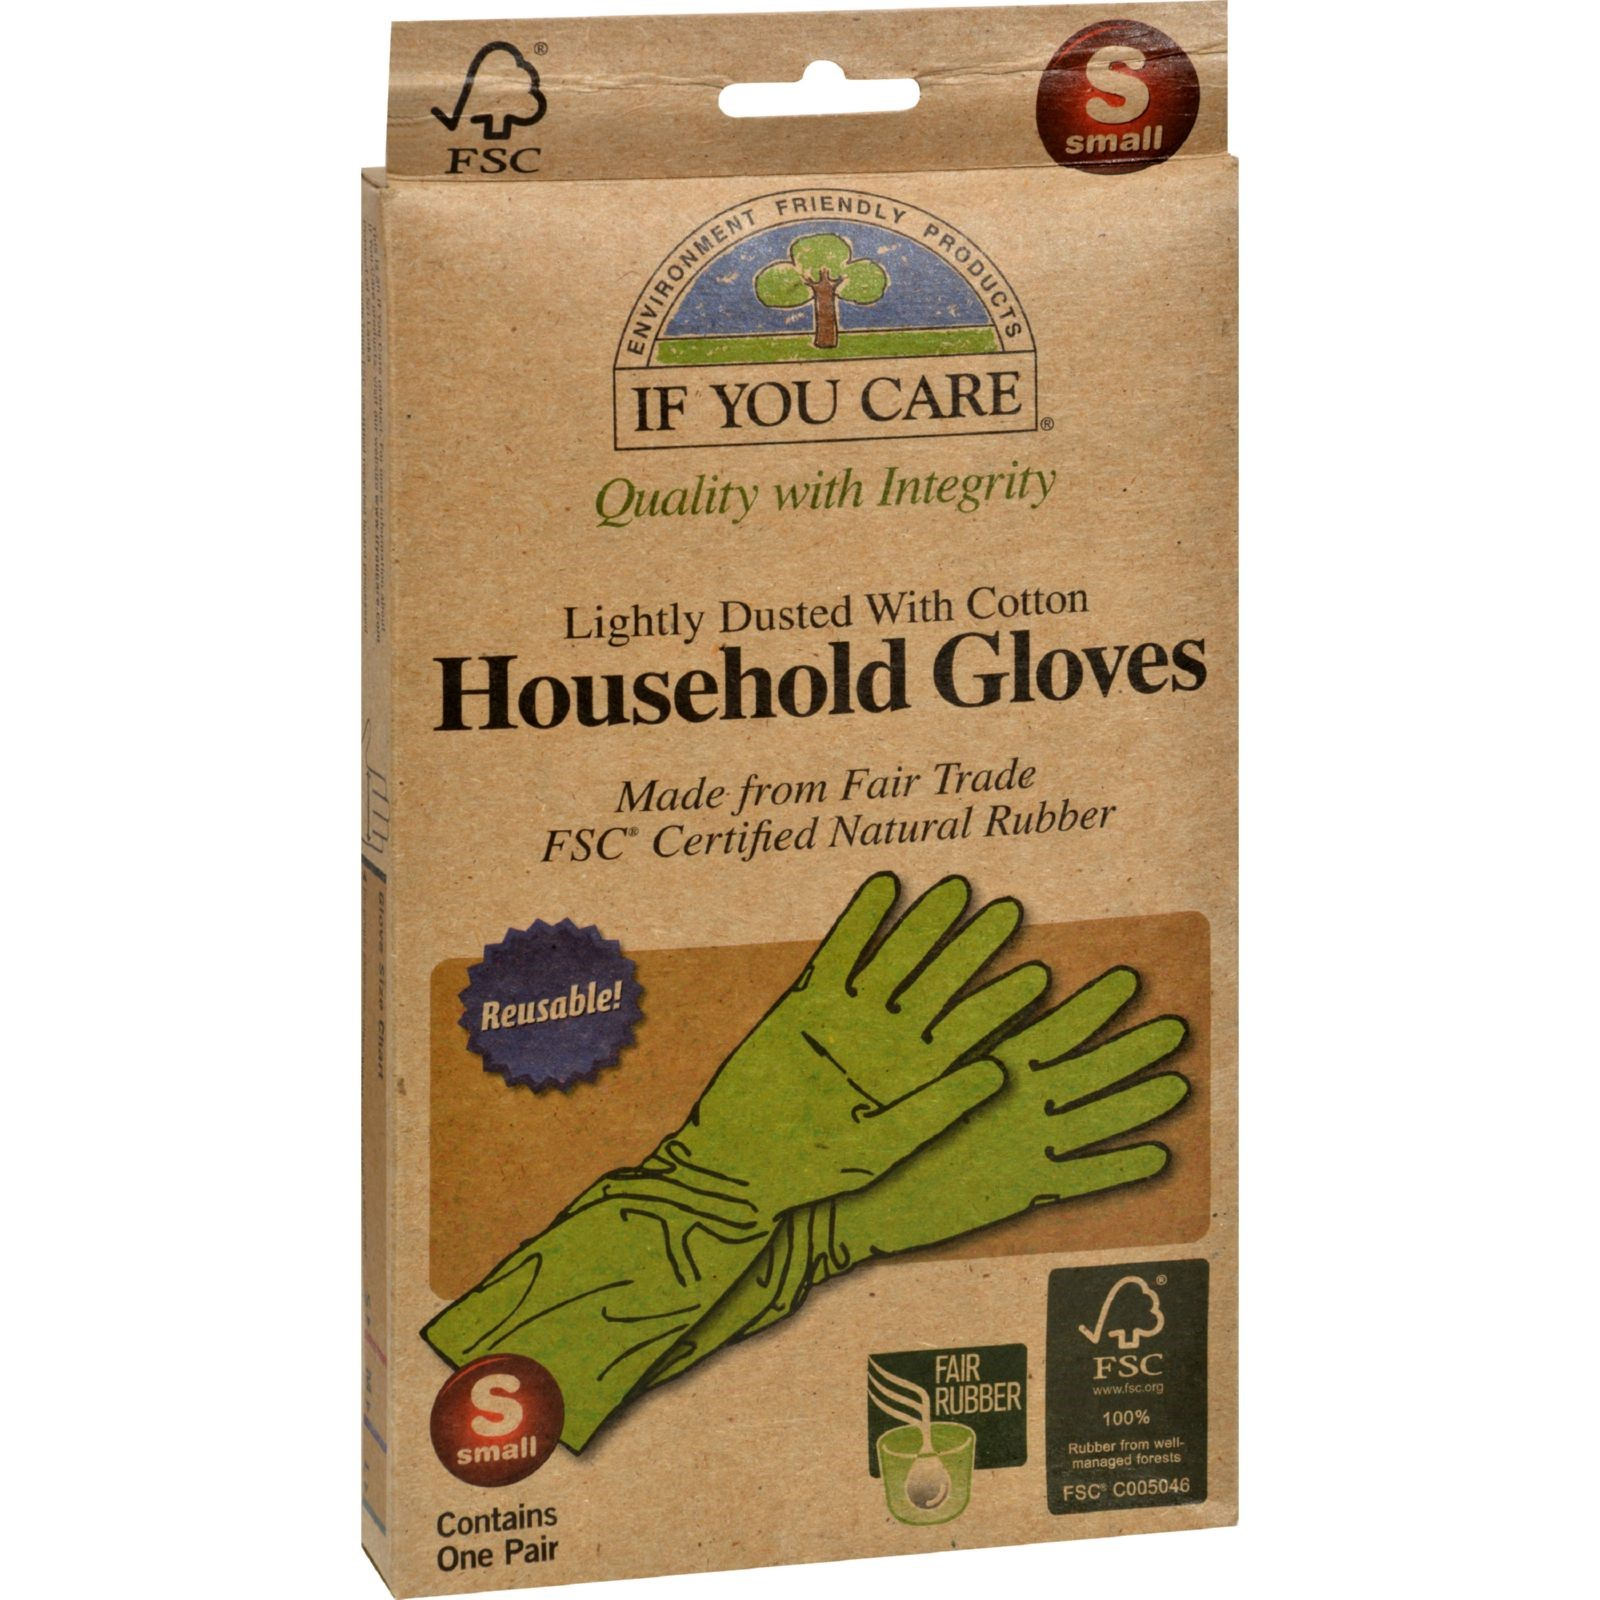 If You Care Household Gloves, Small